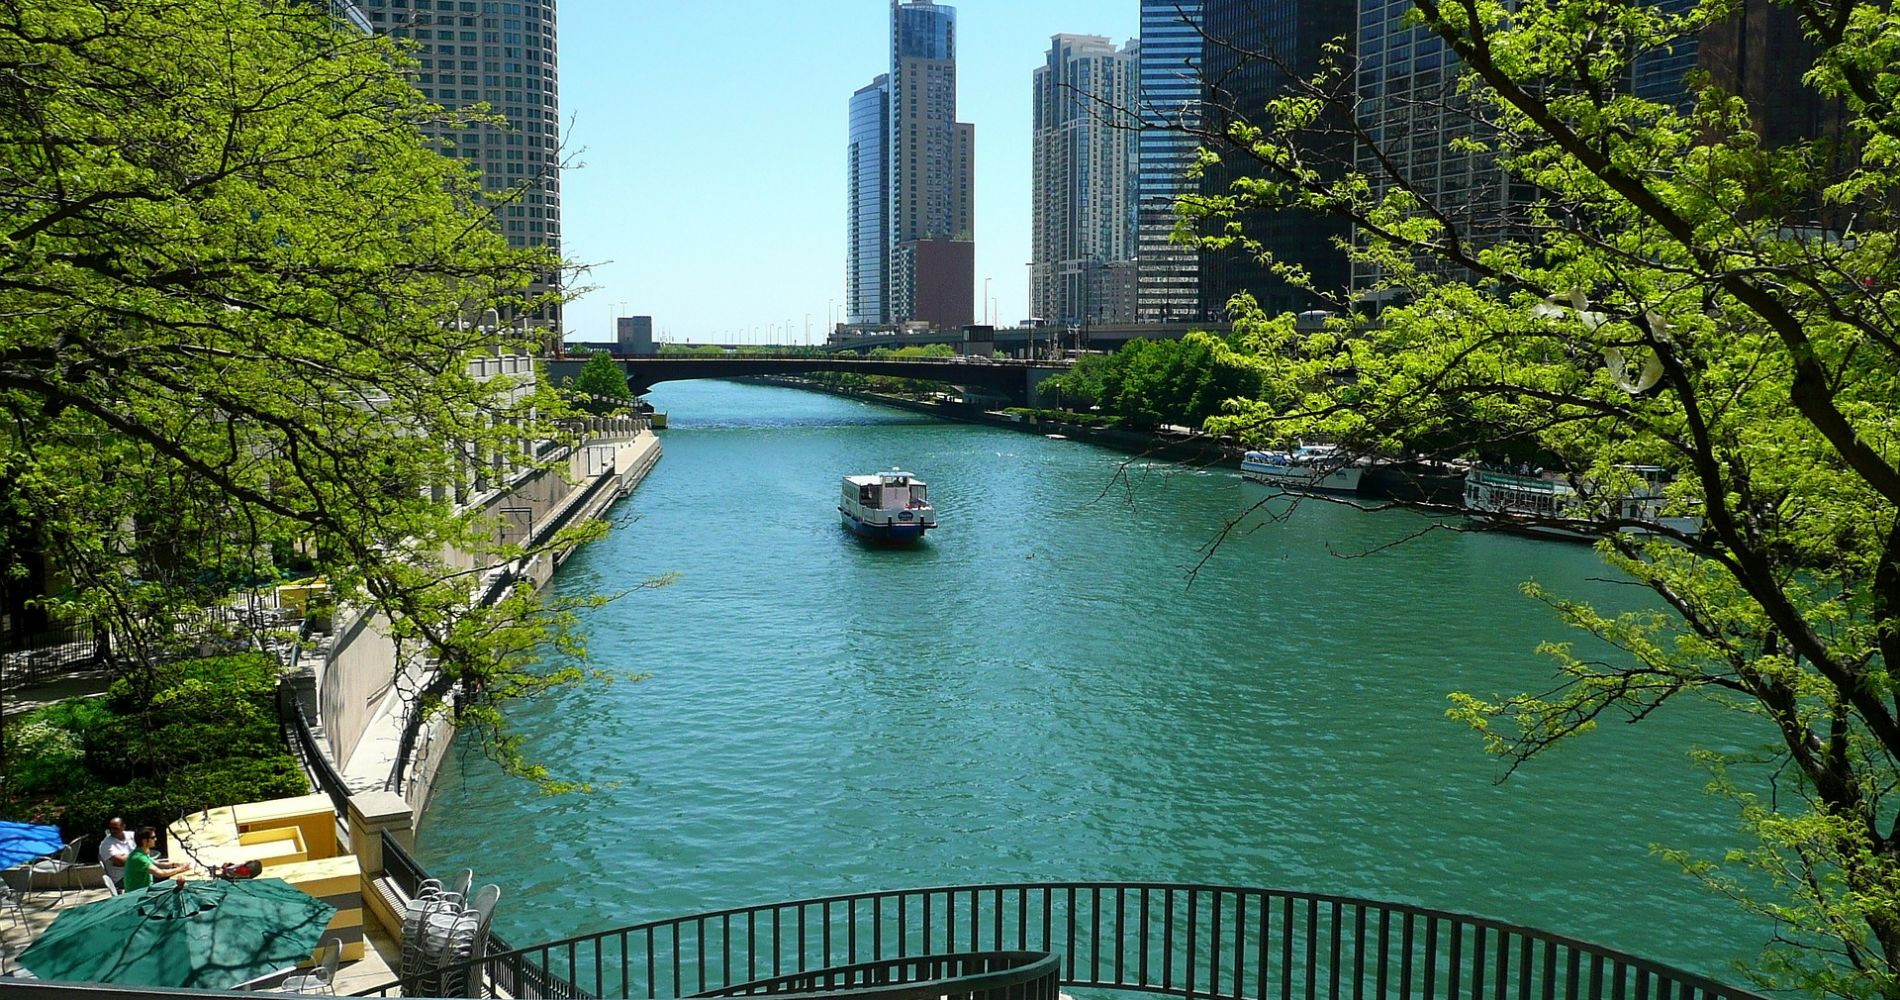 Historical Chicago Kayaking Tour tinggly experience gift